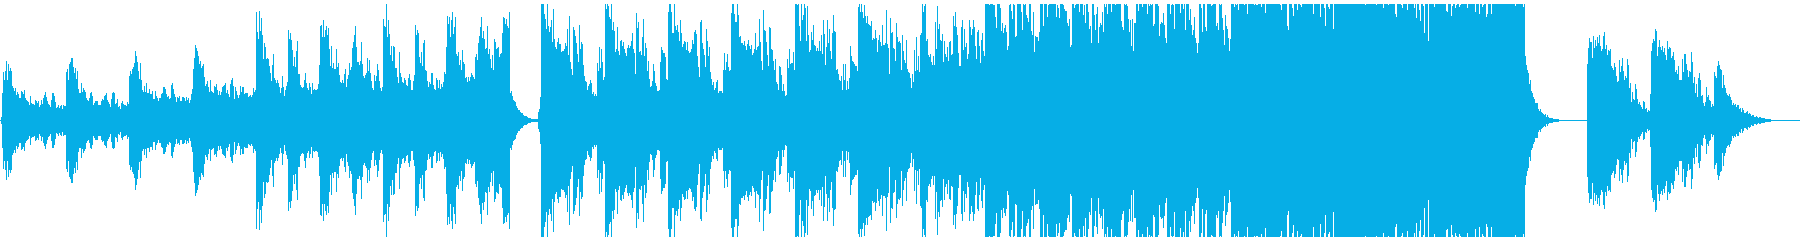 trailer's reproduced waveform